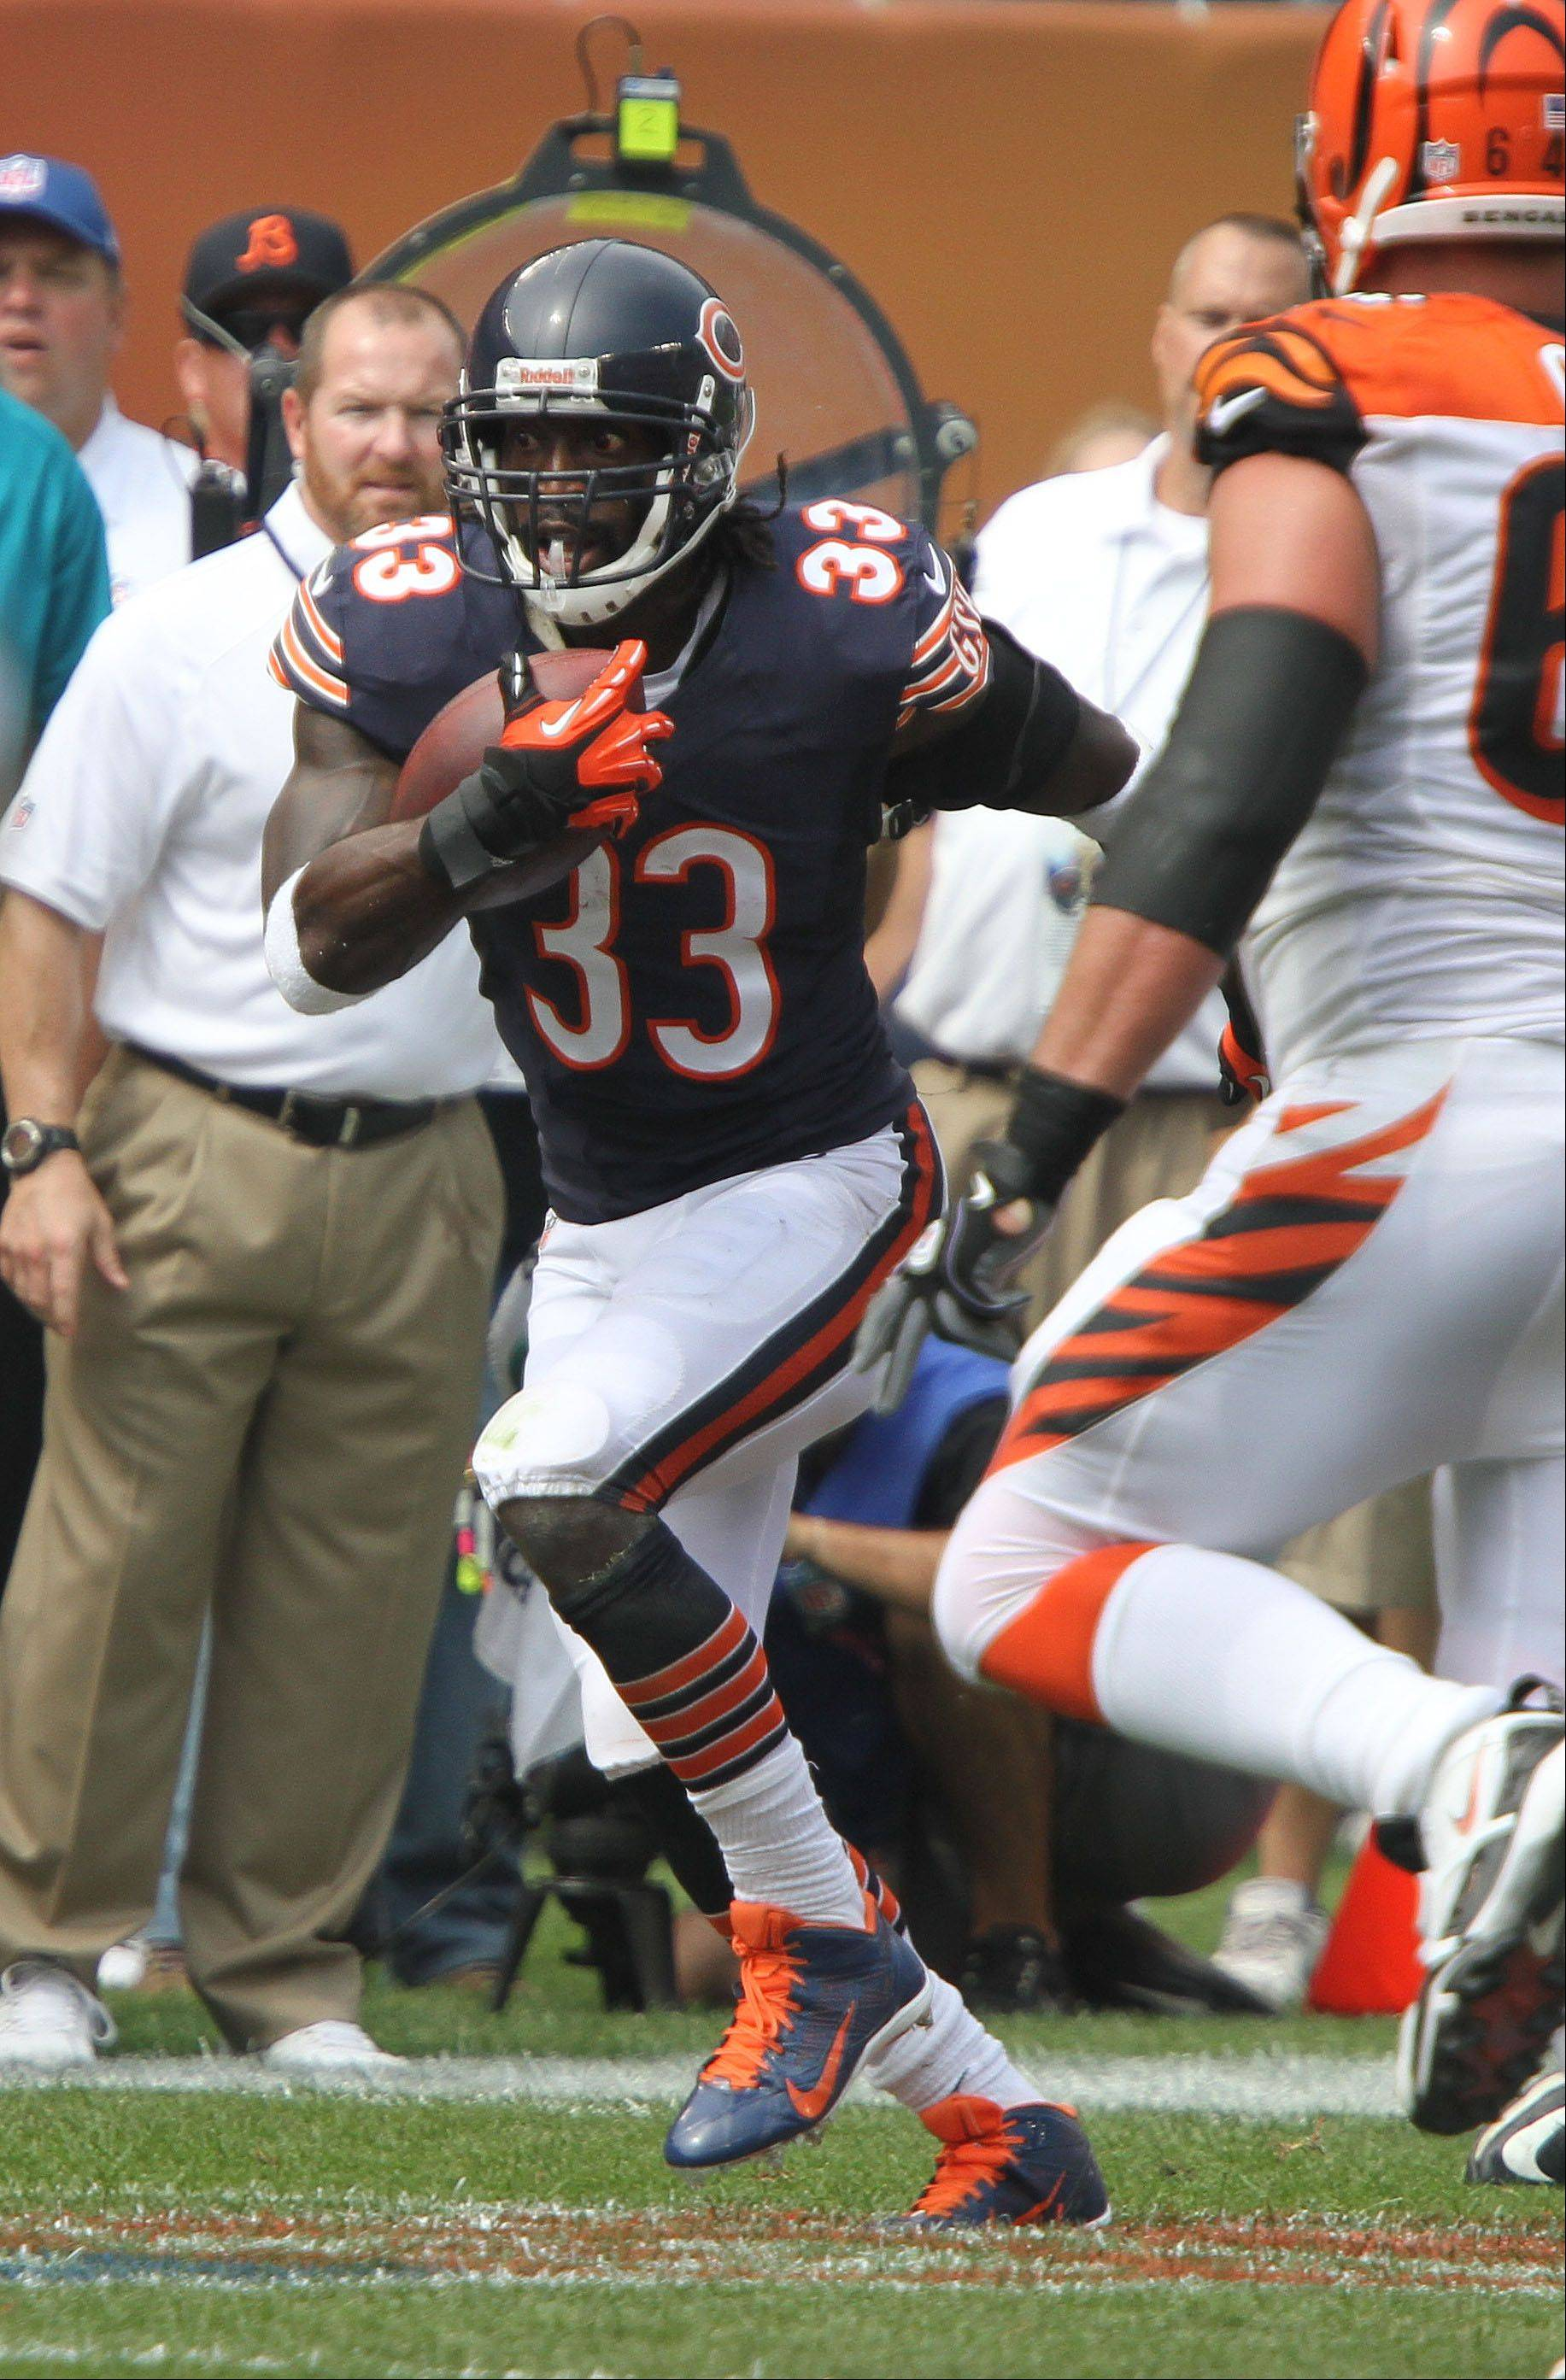 The return of cornerback Charles Tillman should help the Bears� defense do what it does best: take the ball away.